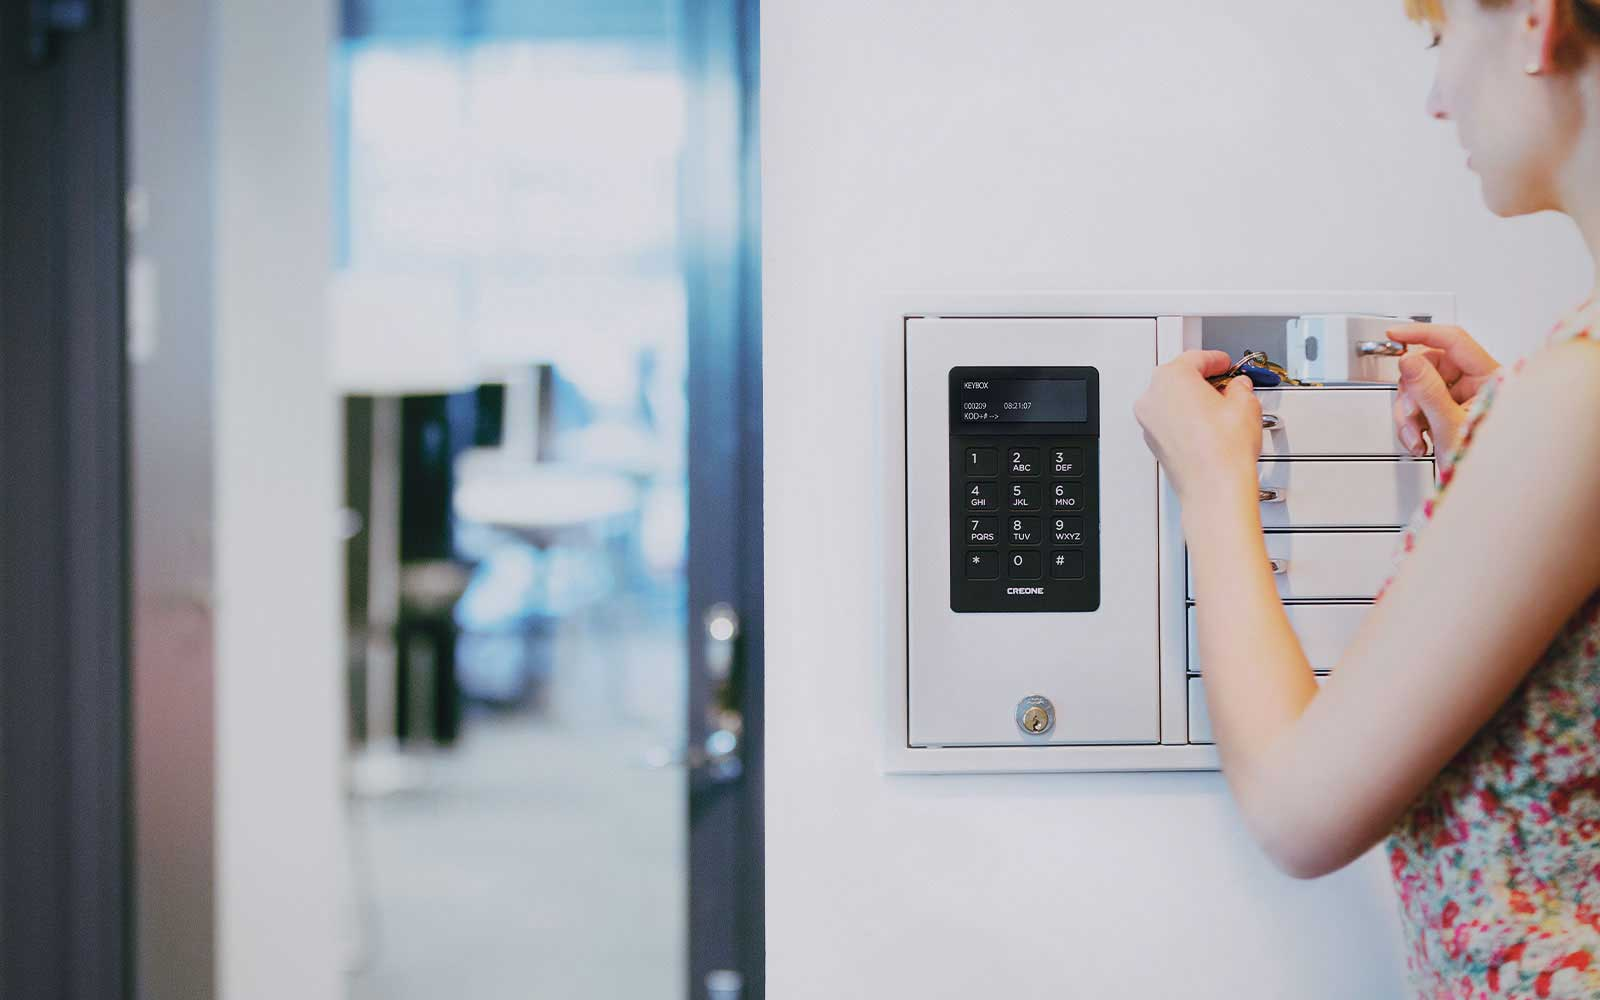 Key management with a key cabinet that has six compartments for key storage and key distribution